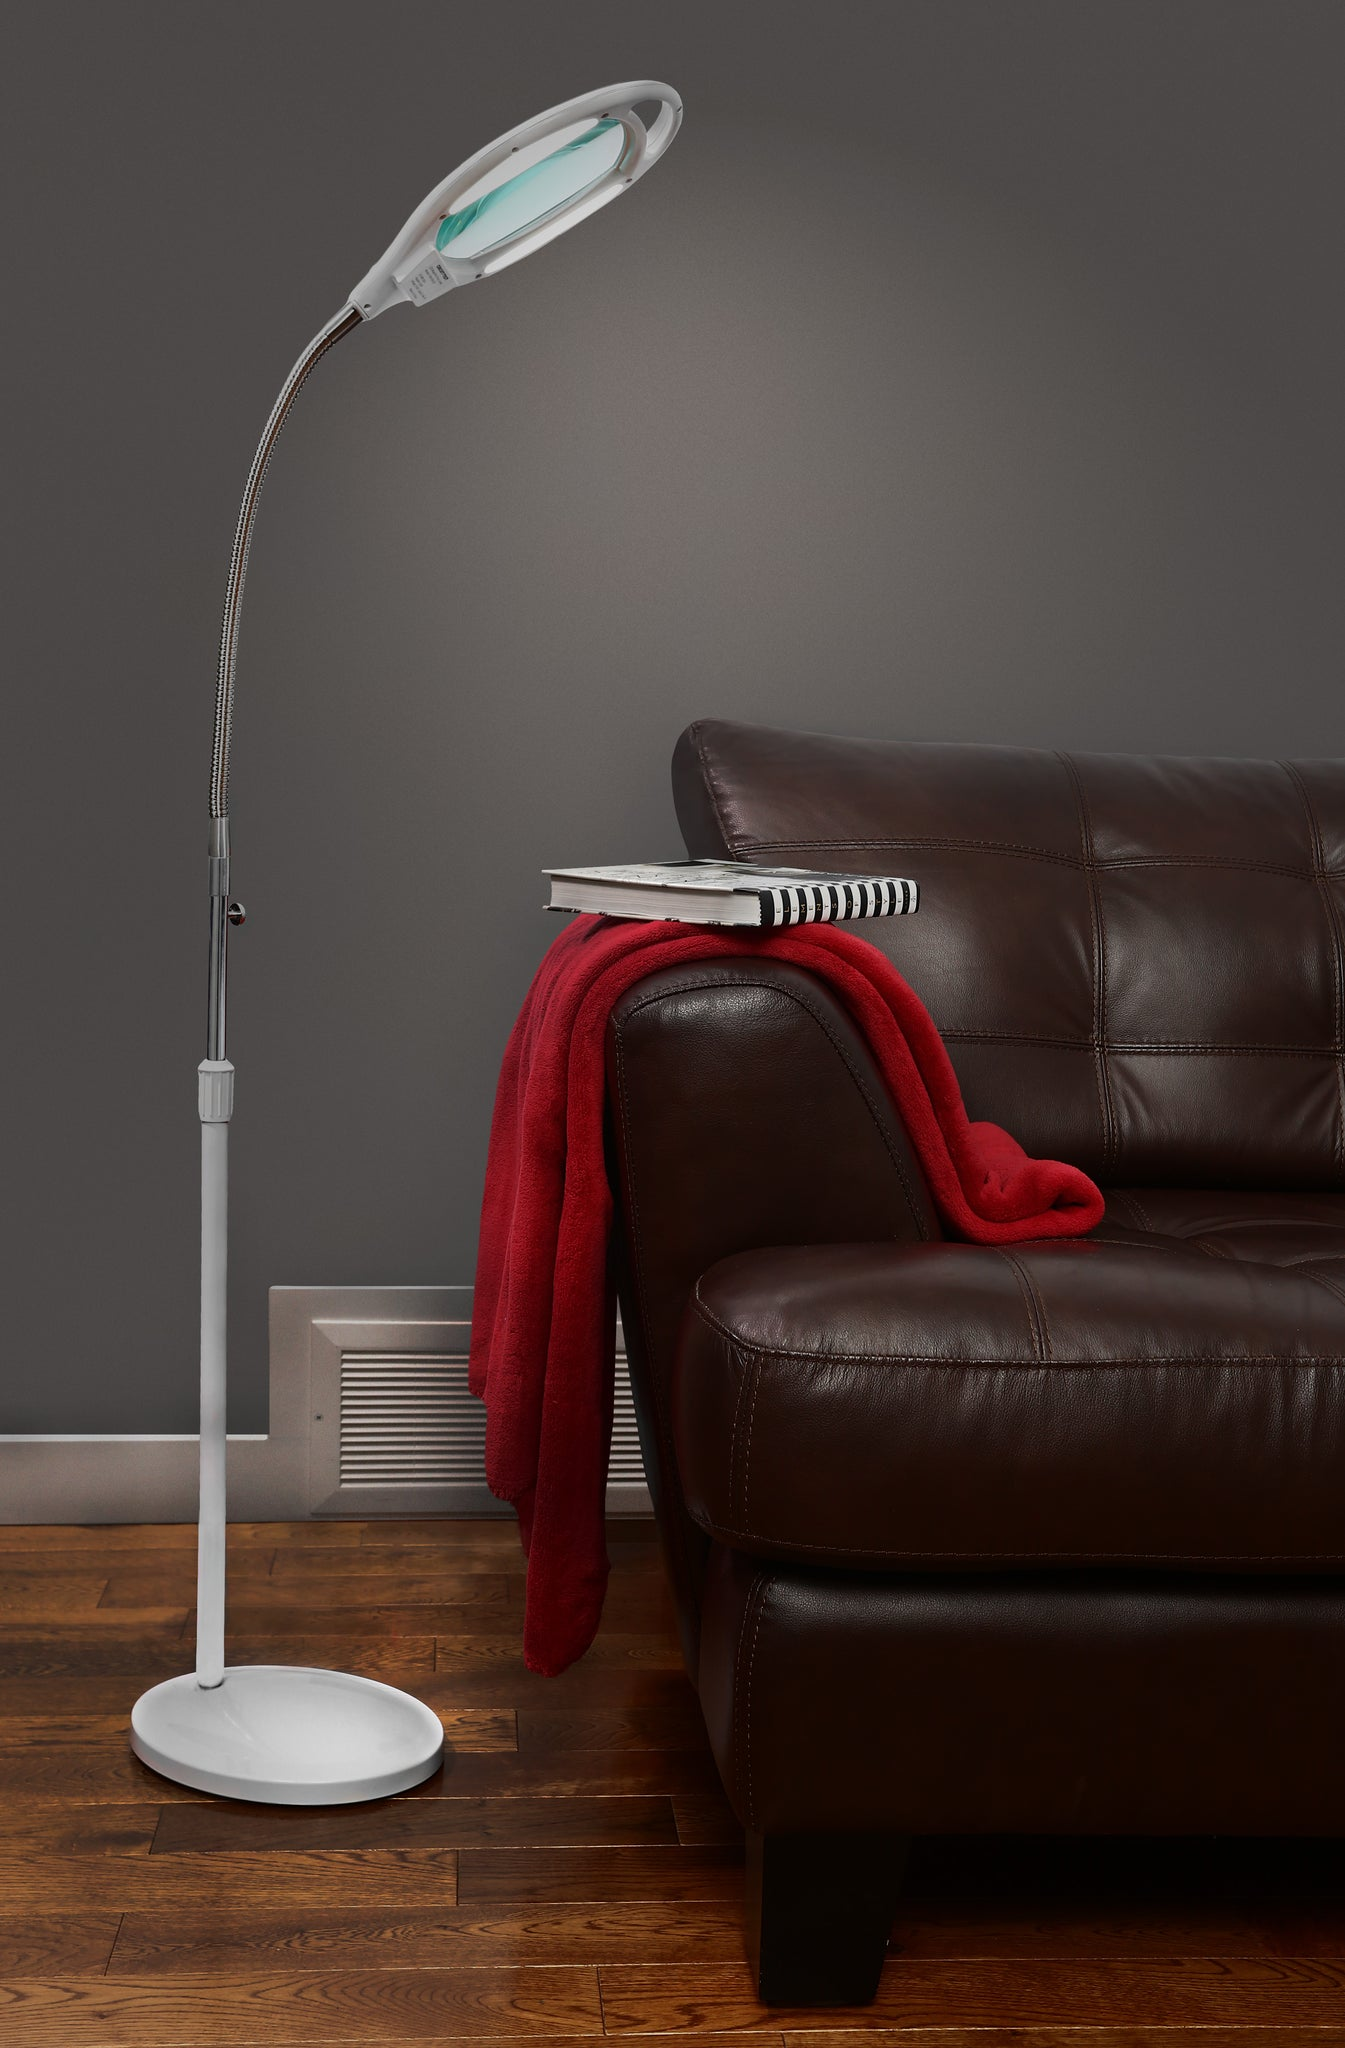 Led Magnifying Floor Lamp With Adjustable Gooseneck 1 75x Magnificat Vision Lighting Products Ltd